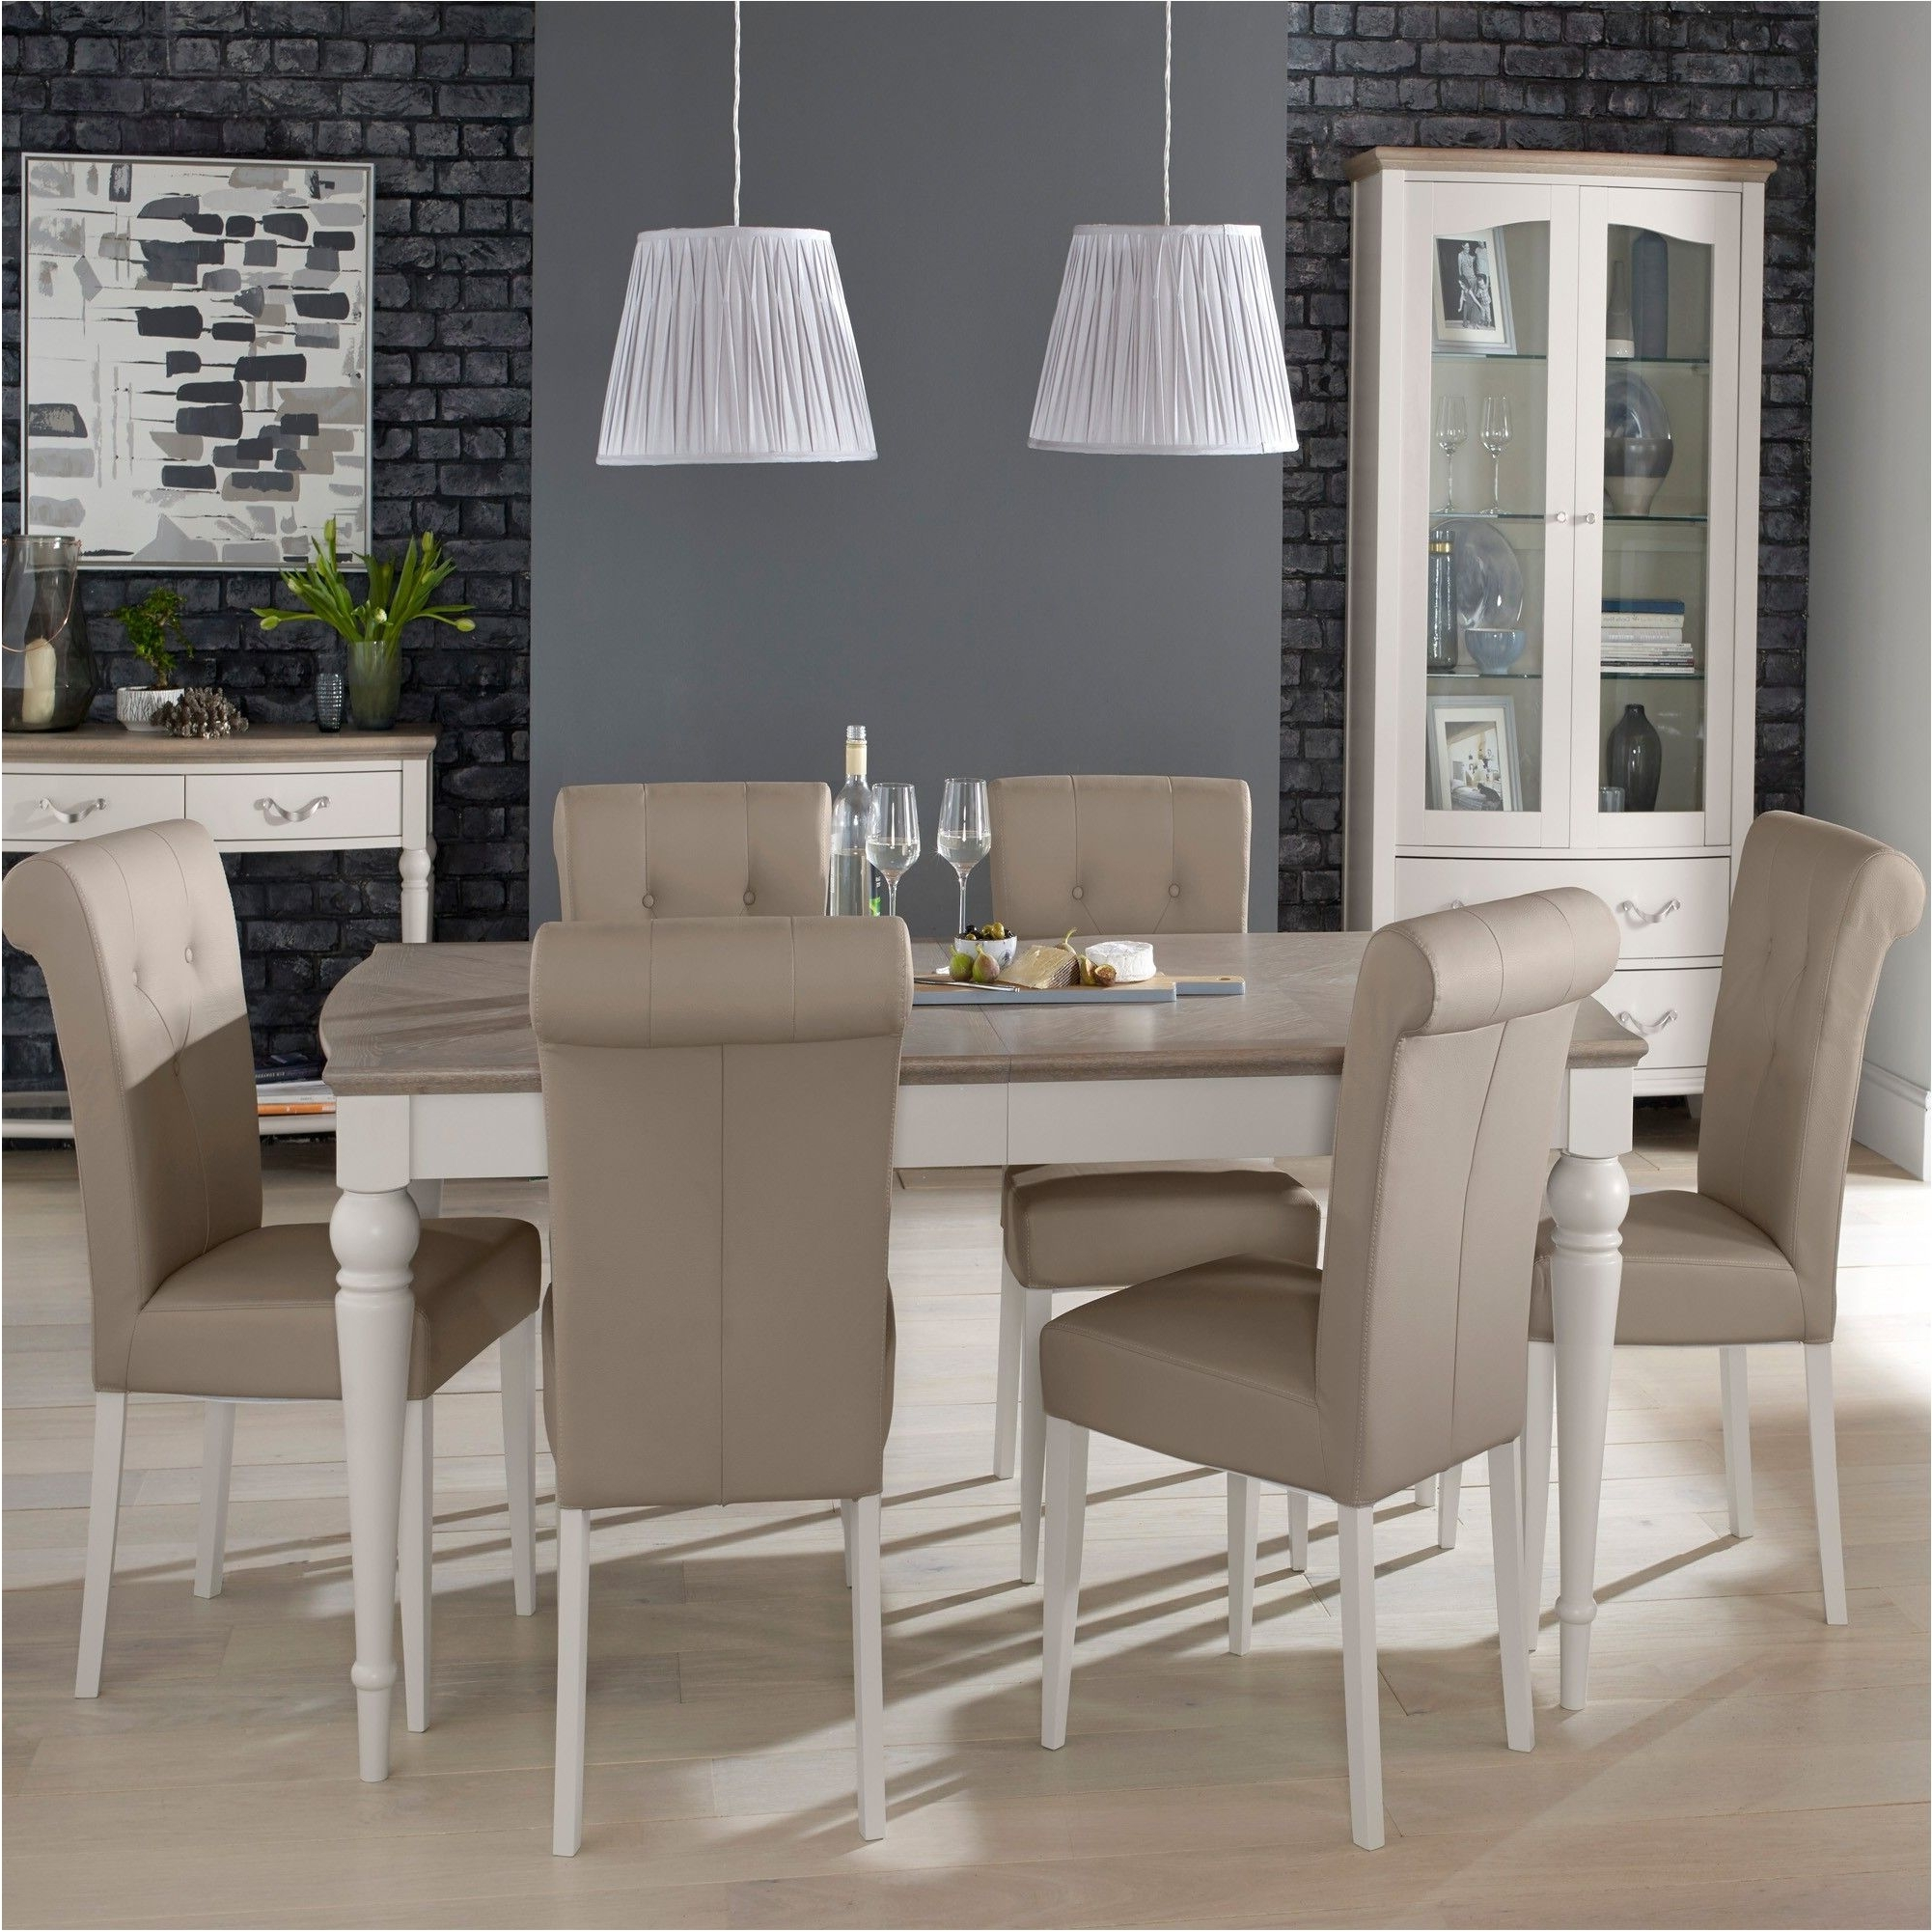 Most Popular 6 Chairs Dining Tables Intended For Magnificent Collection Geneva Dining Table And 6 Chairs Dining Sets (View 15 of 25)